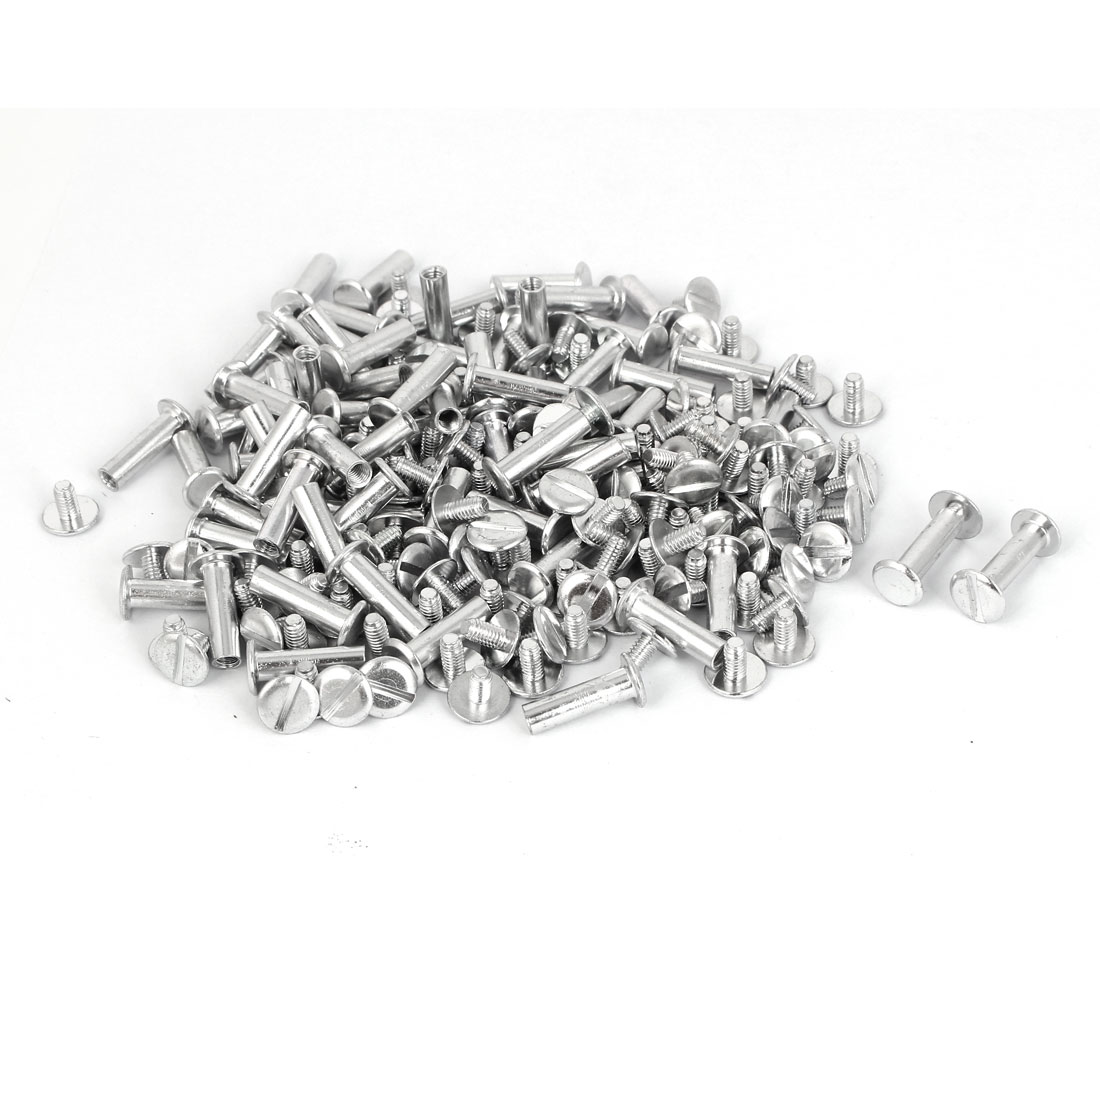 M5x18mm Aluminum Chicago Screws Binding Posts Silver Tone 100pcs